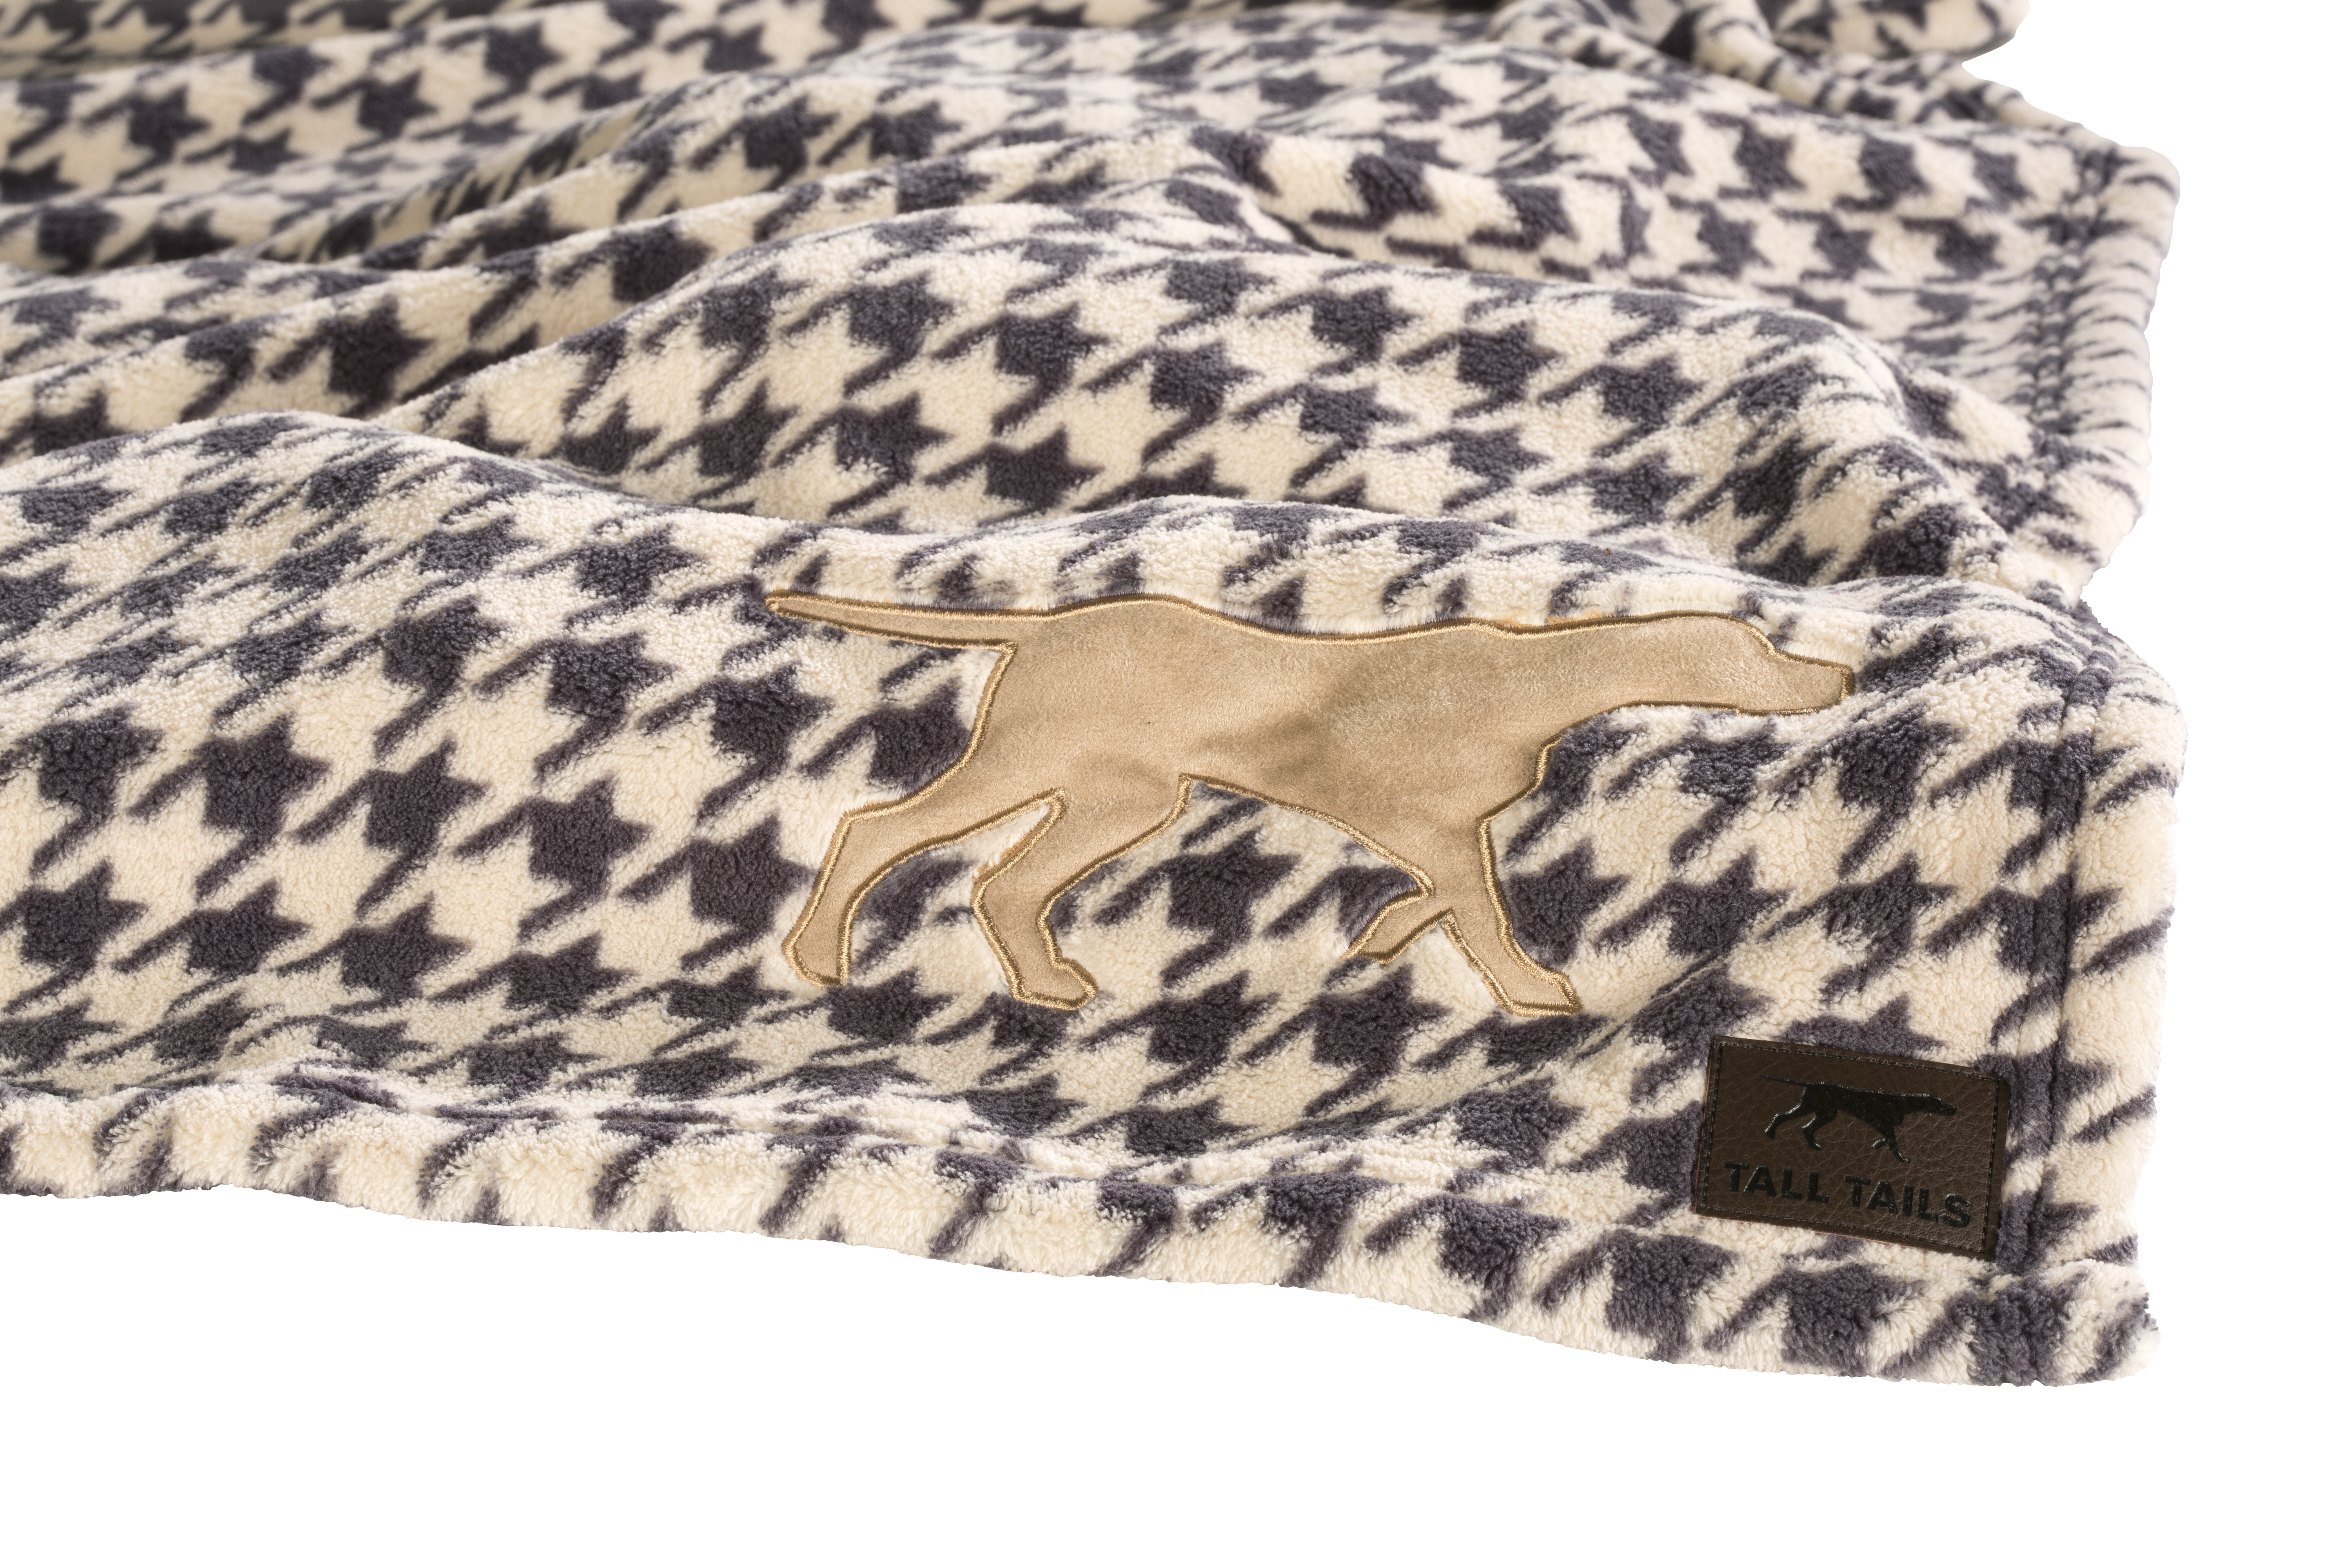 Tall Tails Houndstooth Dog Blanket, 30-in x 40-in